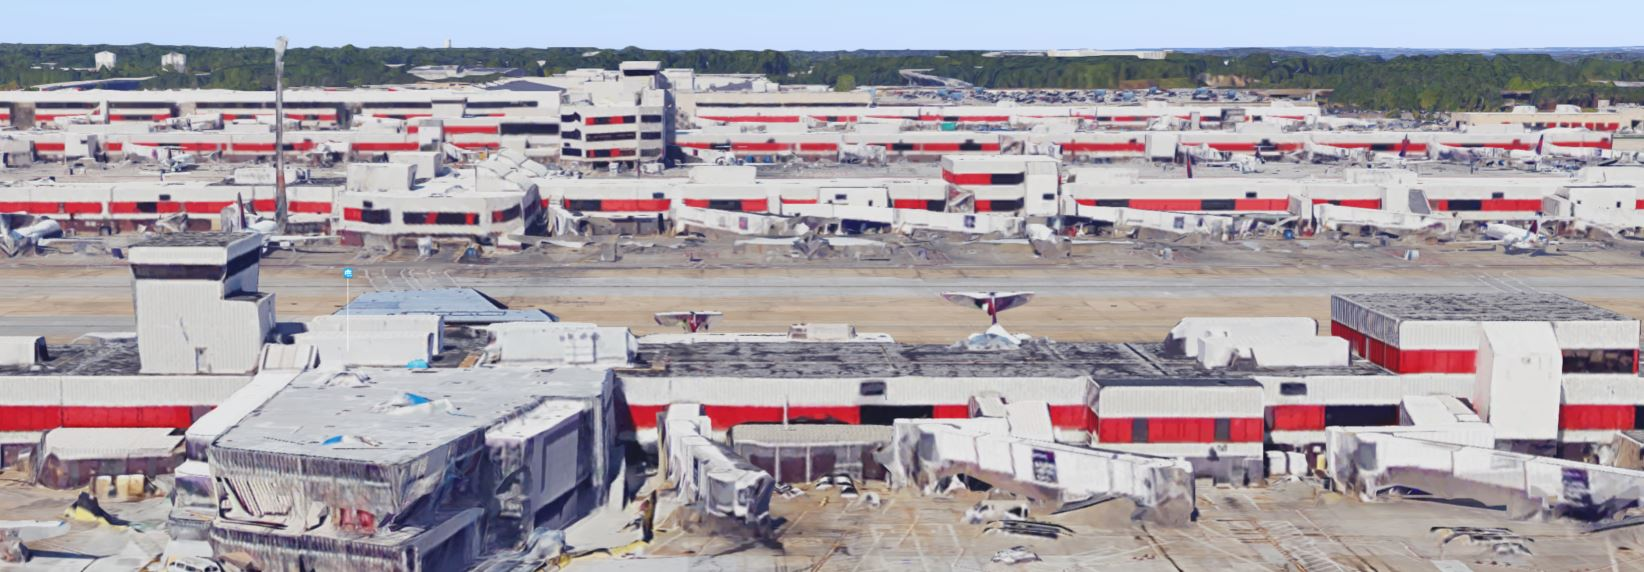 Airport Parking at Hartsfield-Jackson Atlanta International Airport (ATL) can be difficult to navigate. ATL's Park 'N Fly eliminates this hassle by offering door to door service, online parking reservations and for a limited time FREE car washes.